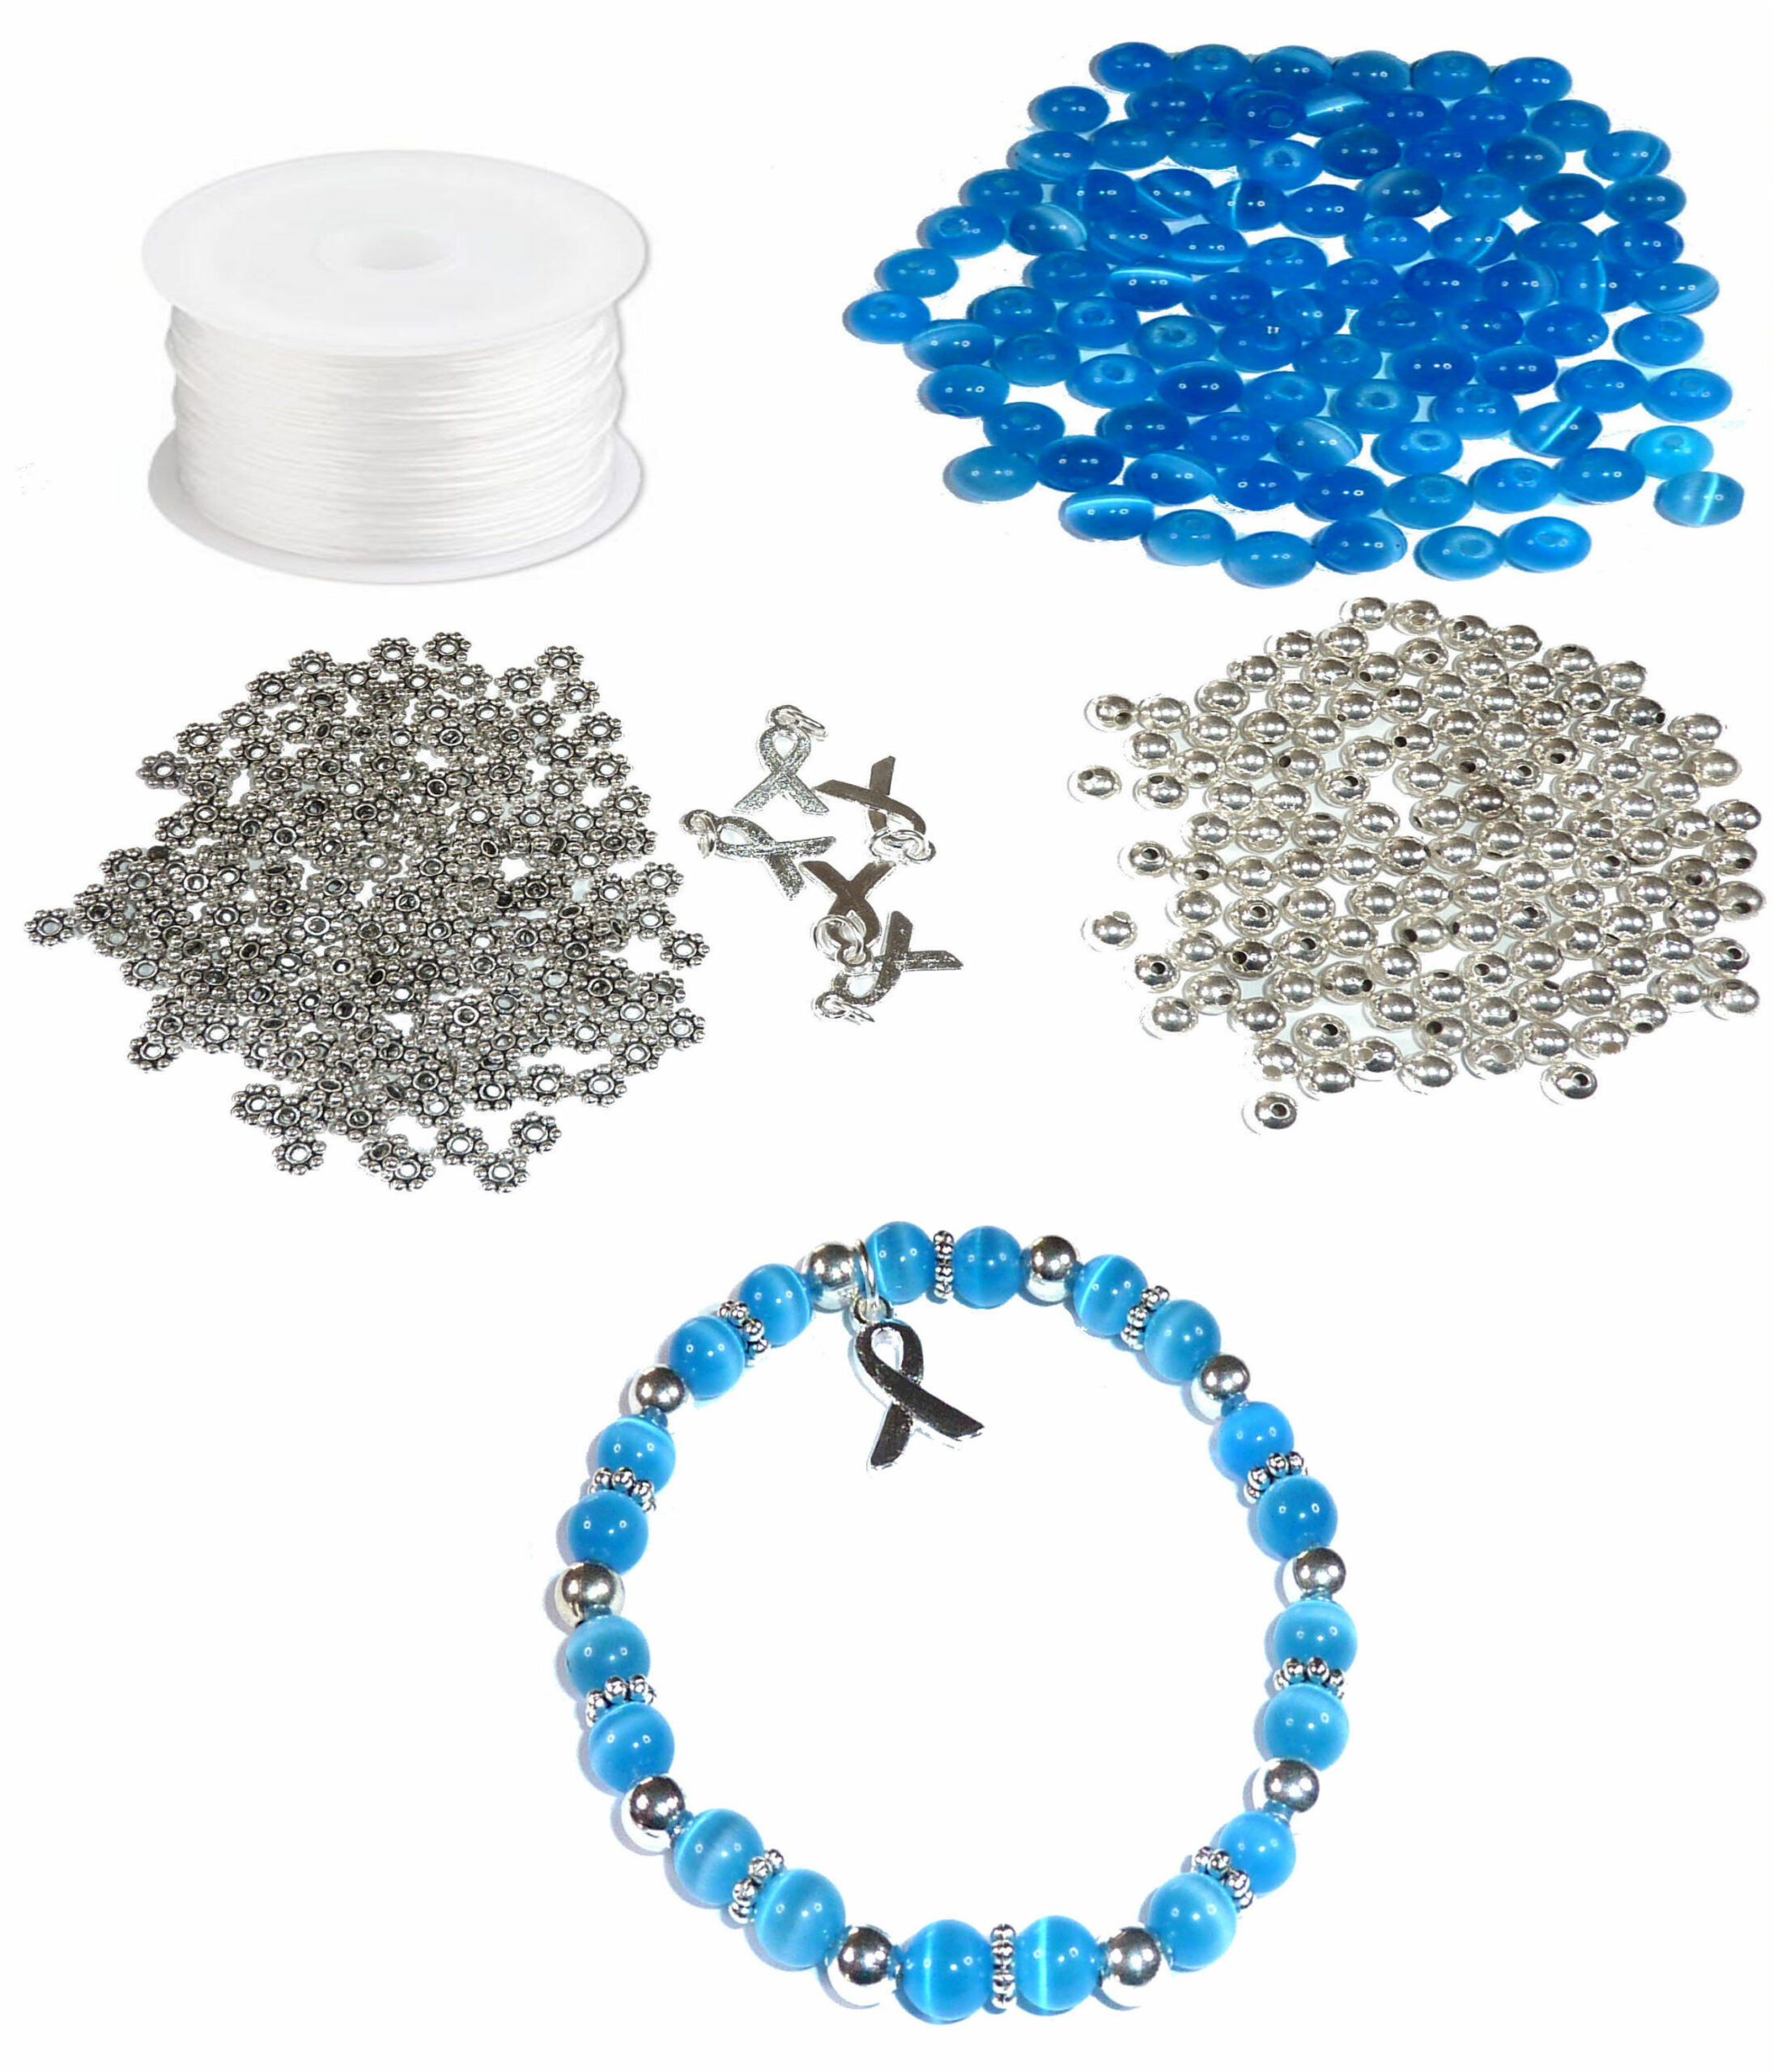 Cancer Jewelry Kit Fundraising Jewelry Cancer Survivor Bracelets Makes 65